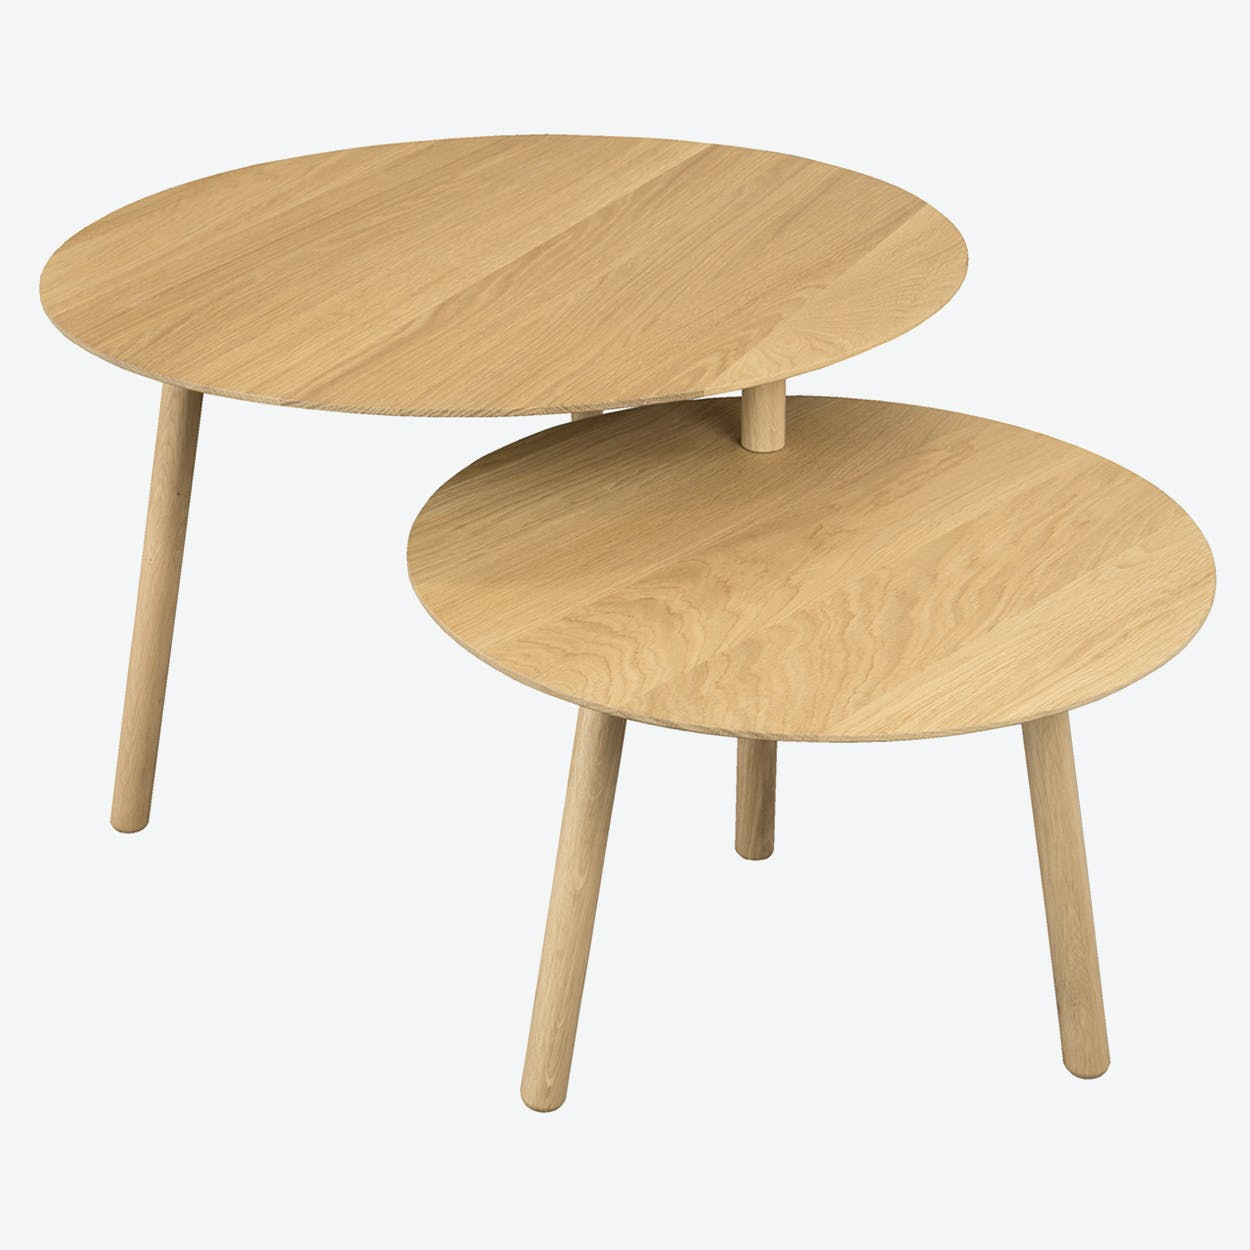 Drade Table in Lacquered Oak (Dull) Wood